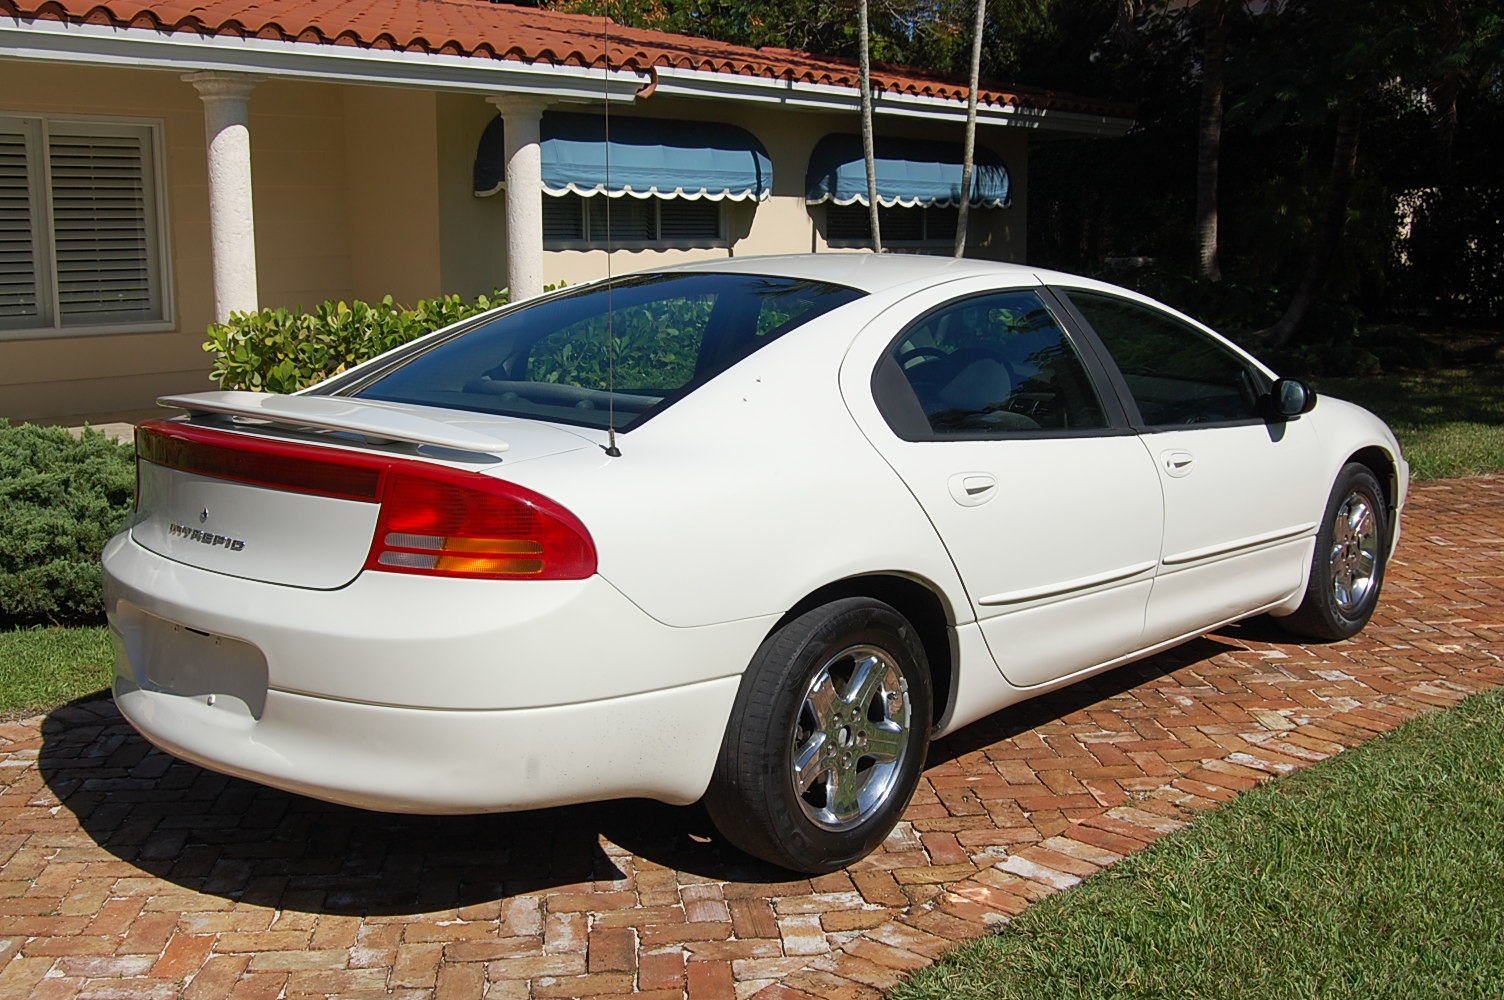 Dodge Intrepid #10